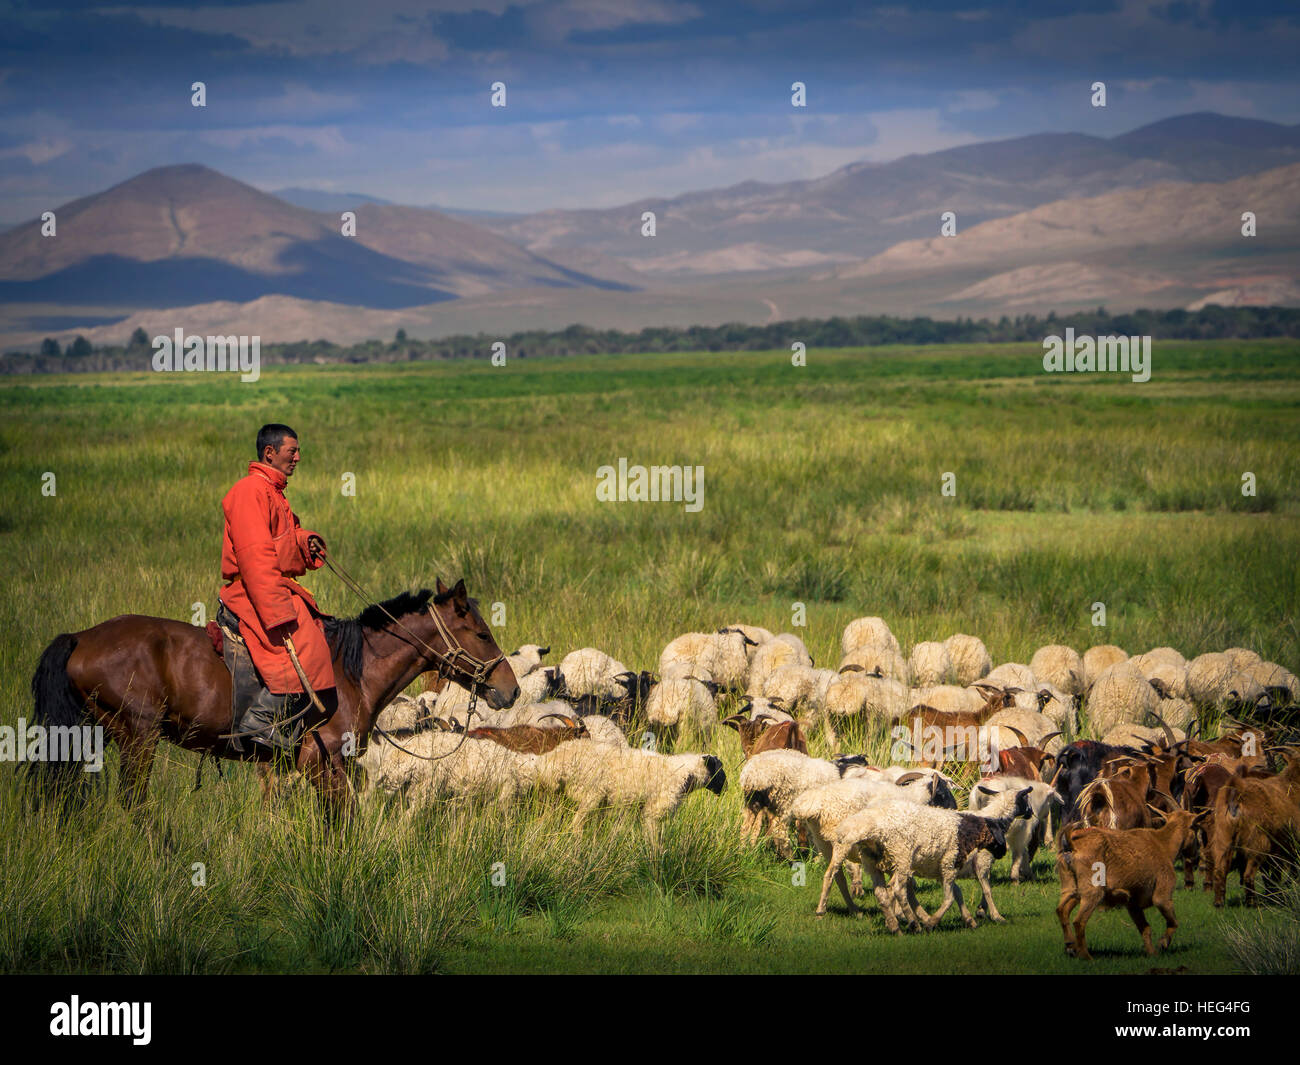 Nomad, rider on horseback with goats and sheep, Mongolia - Stock Image